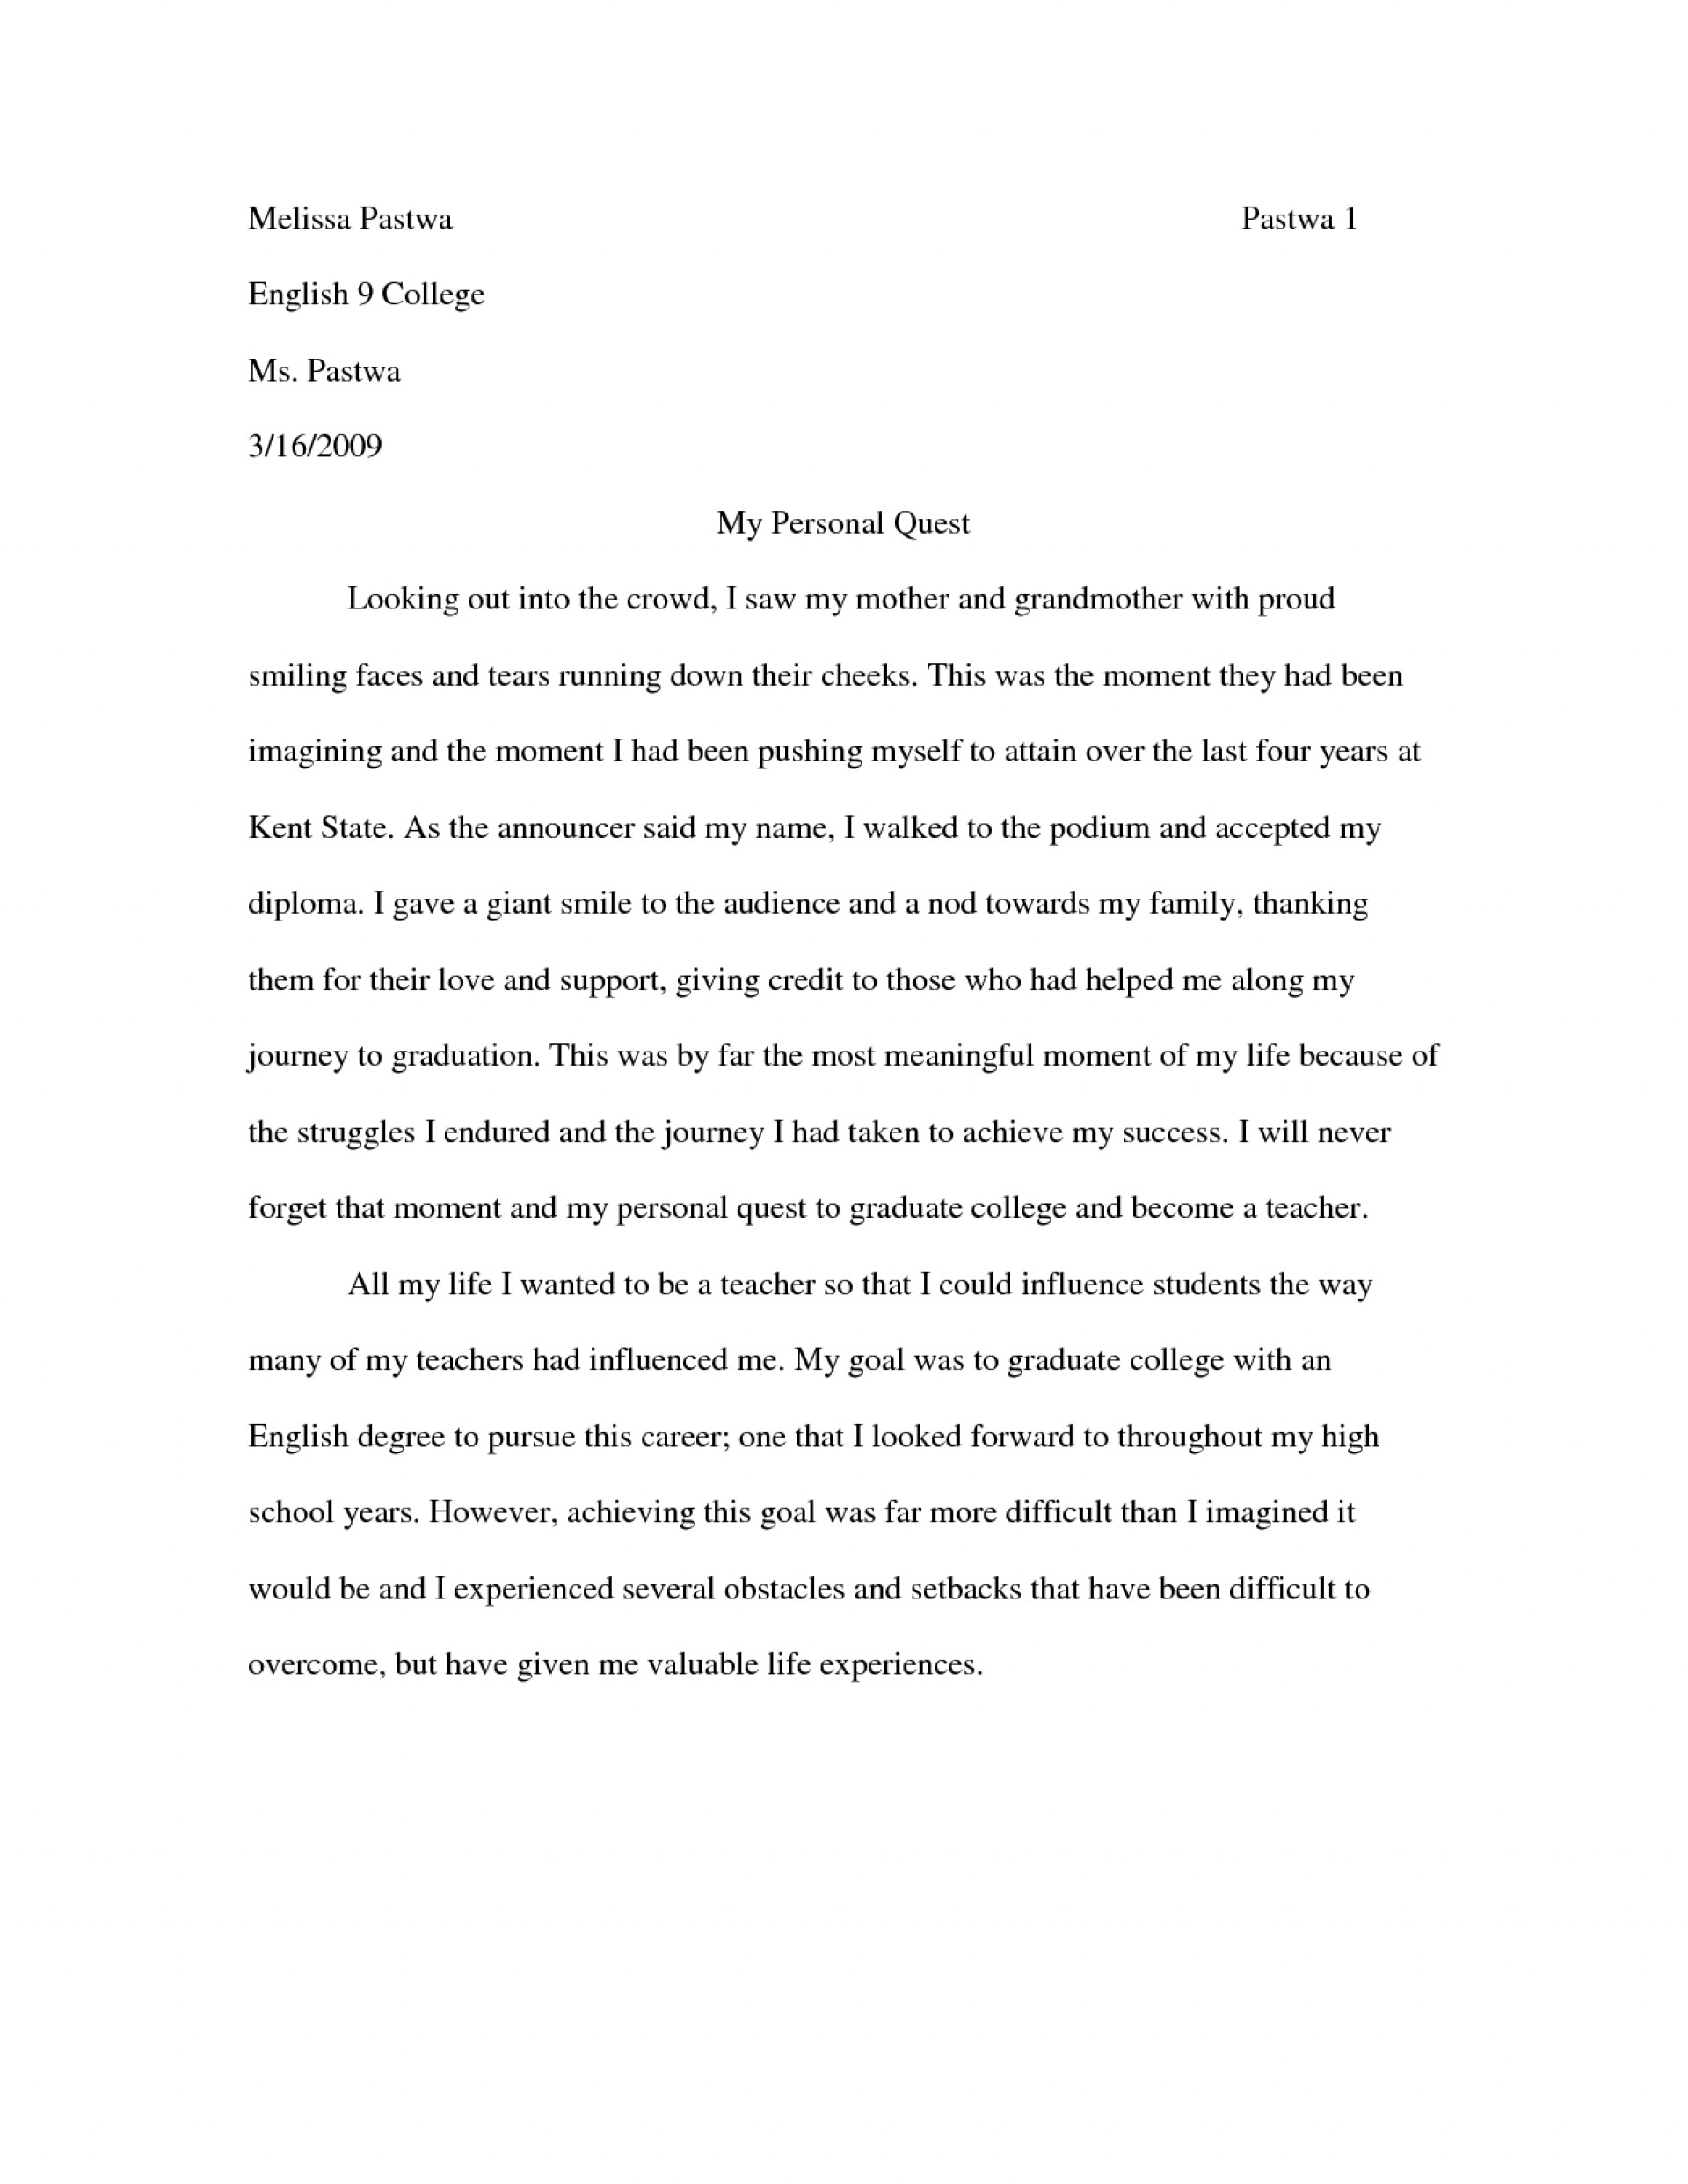 014 Essay Examples For High School Personal Narrative Writings And Essays Simple Example With Re Middle Unique Statement Sample 5 Paragraph Argumentative Tagalog 1920